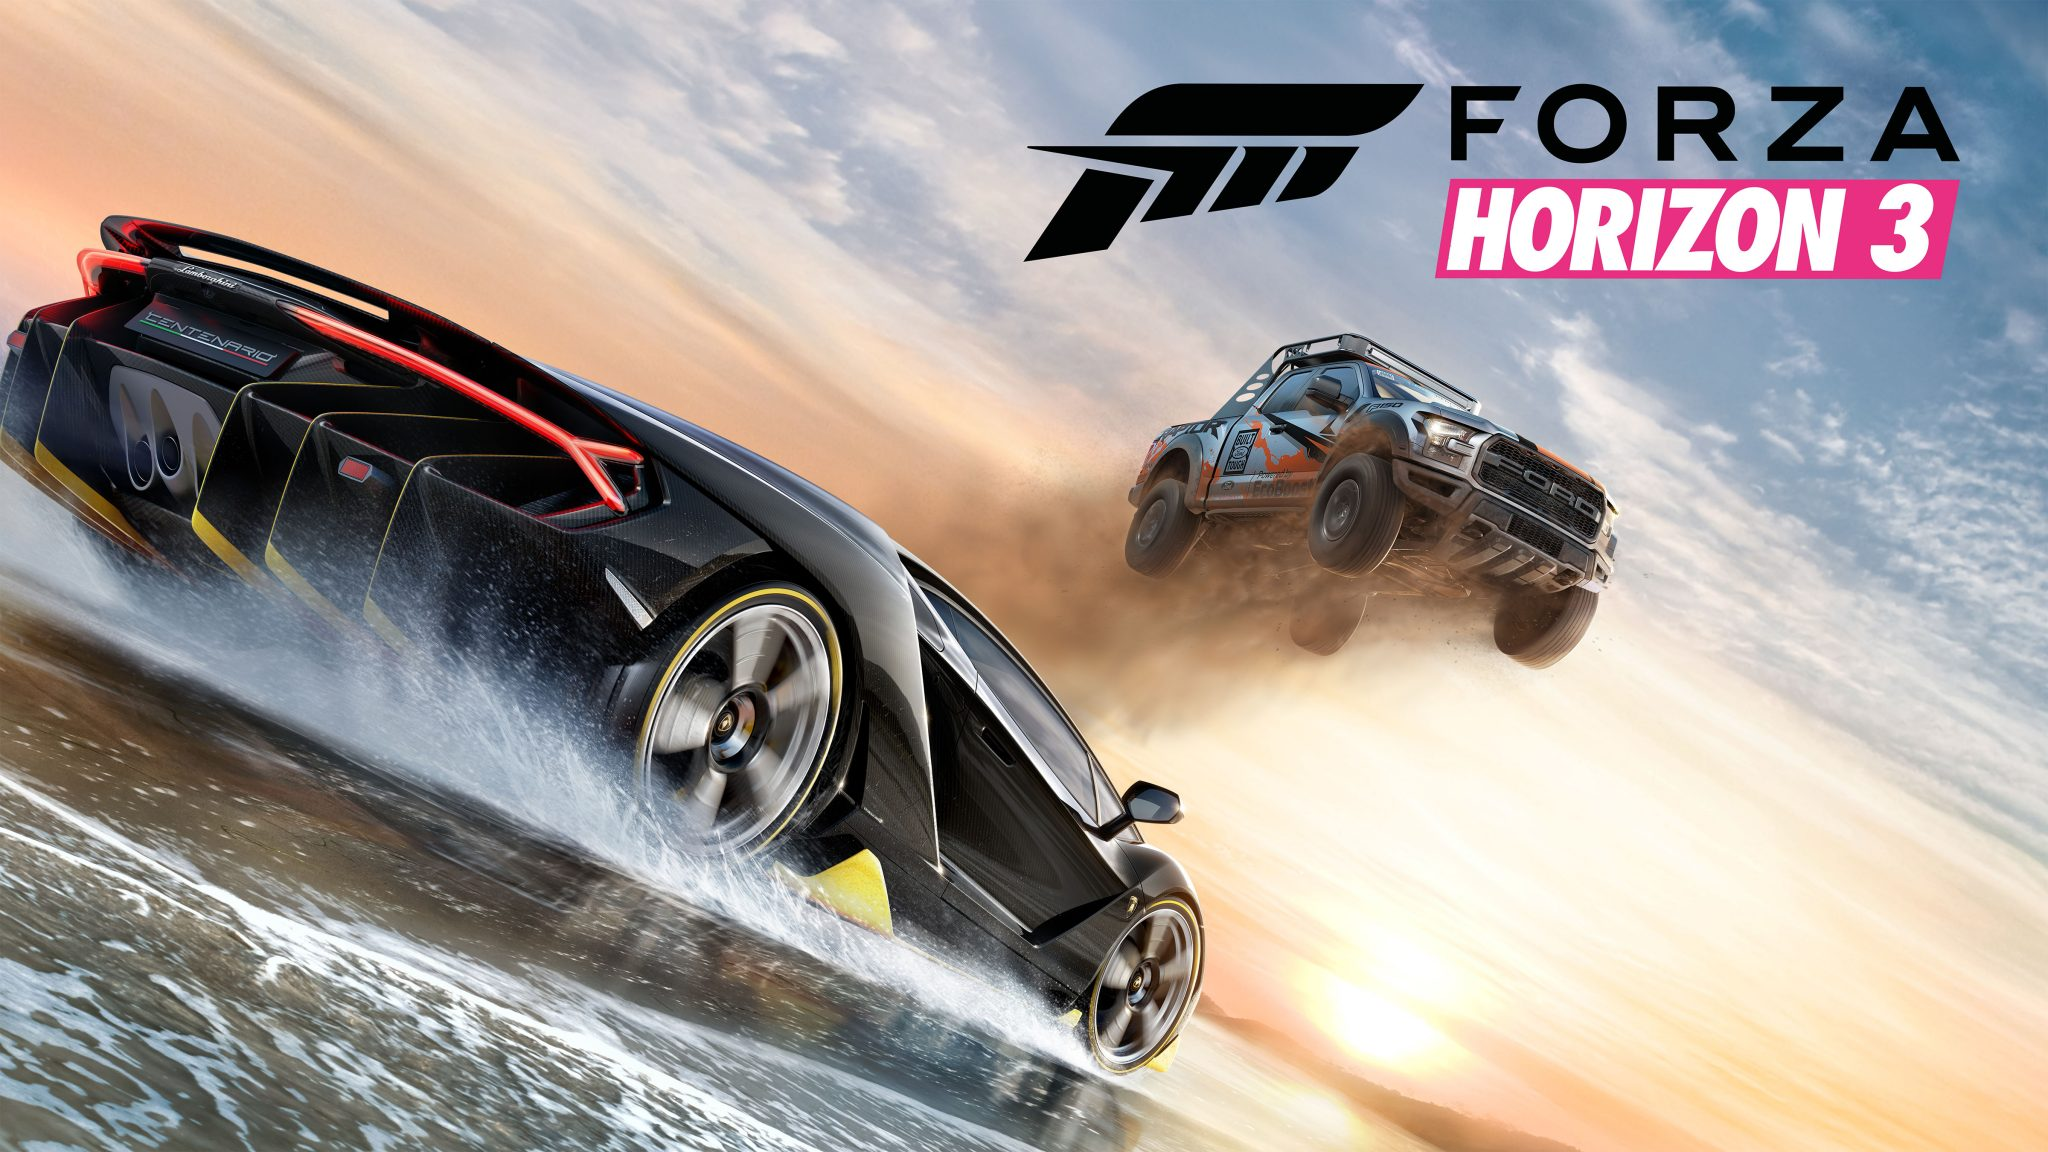 Forza Horizon 3 rolls out 4K update for Xbox One X